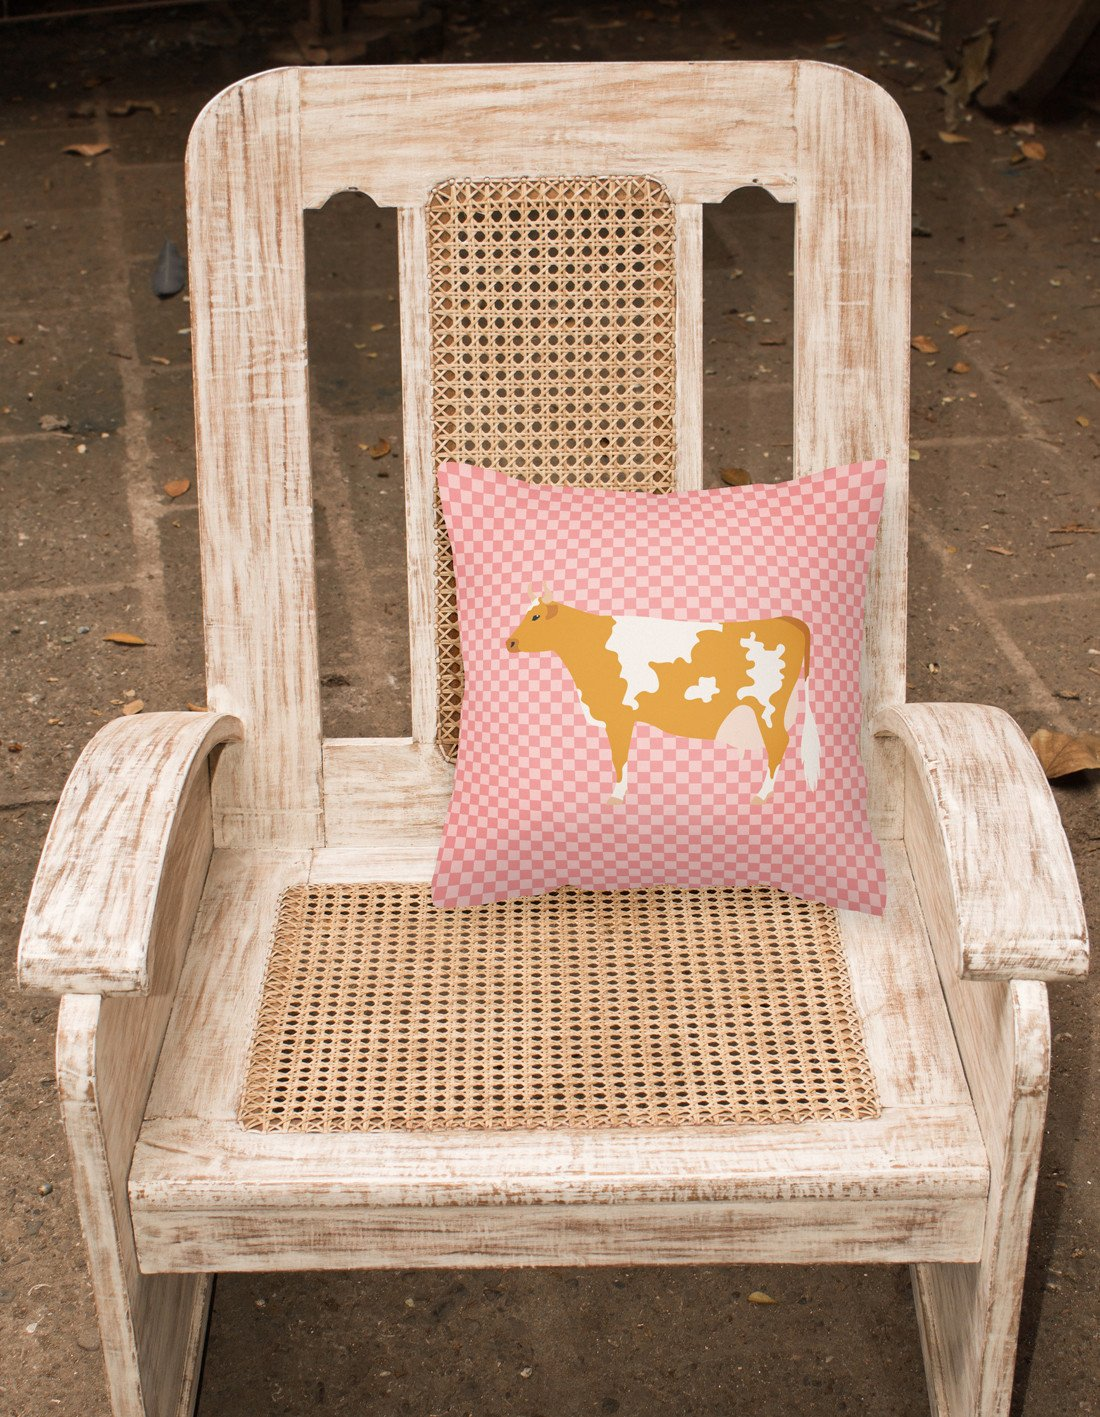 Guernsey Cow Pink Check Fabric Decorative Pillow BB7821PW1818 by Caroline's Treasures